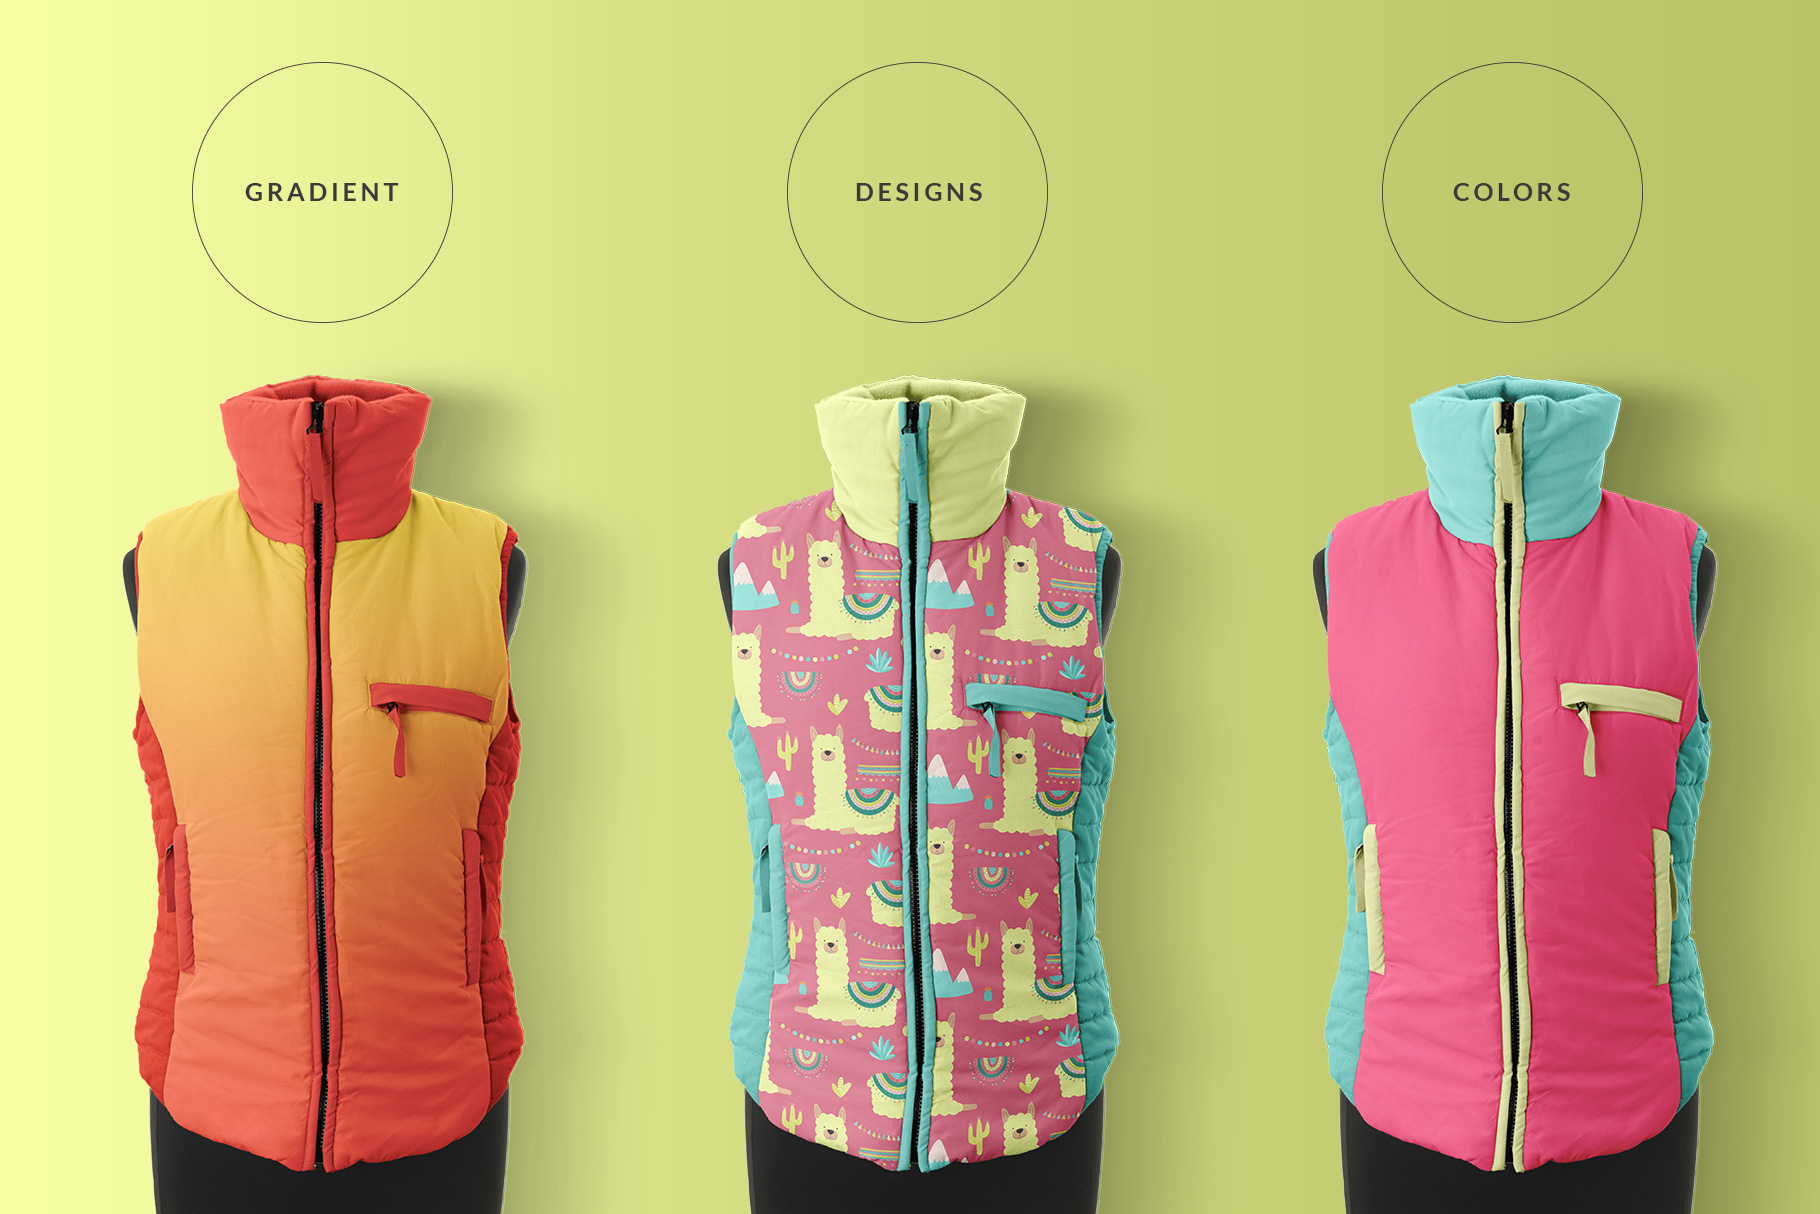 types of the Winter is incomplete without a jacket, so it is showcasing wintery or festive patterns. This women's sleeveless winter jacket mockup is a perfect fit to showcase your pattern designs. This women's sleeveless winter jacket mockup is cute, trendy, edgy, and suitable loaded with smart features. The female sleeveless fluffy jacket is a turtle neck. This jacket mockup is a front-view and comes with a manikin option too. This sleeveless winter jacket is high resolution and has very photorealistic effects to make it a collective item. Smart-objects and color-coded layers also save you valuable time. Features: Artboard resolution: 6000 x 4000 pixels. Editability: Color & design changeable. Image quality: 300dpi. Layers: Organized, Smart object. No. Of PSD files: 1 Note: The patterns used in the presentation are not included in the main file. We are very thankful to BunnyBoo for providing us these amazing patterns. To download the patterns used in this mockup please check the link Hand-drawn llama collection. You can check more patterns on BunnyBoo.